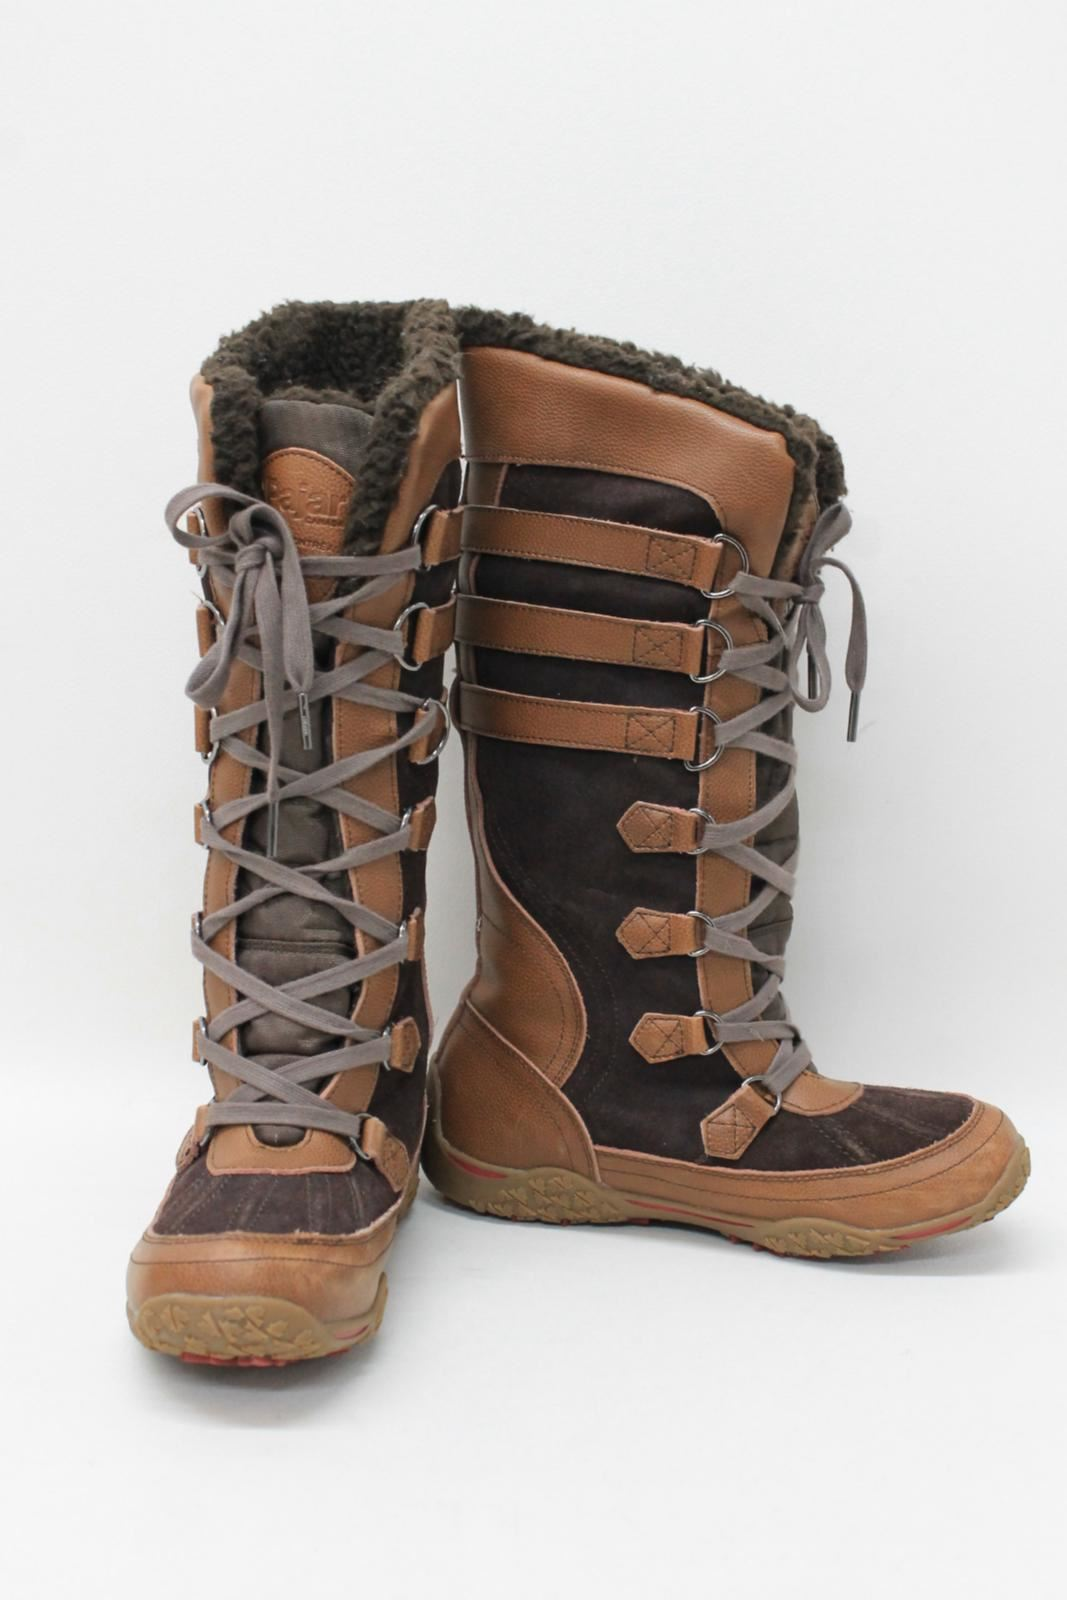 3f455b35b3b PAJAR CANADA Ladies Tan Brown Leather Suede Lace Up Knee Length Snow ...